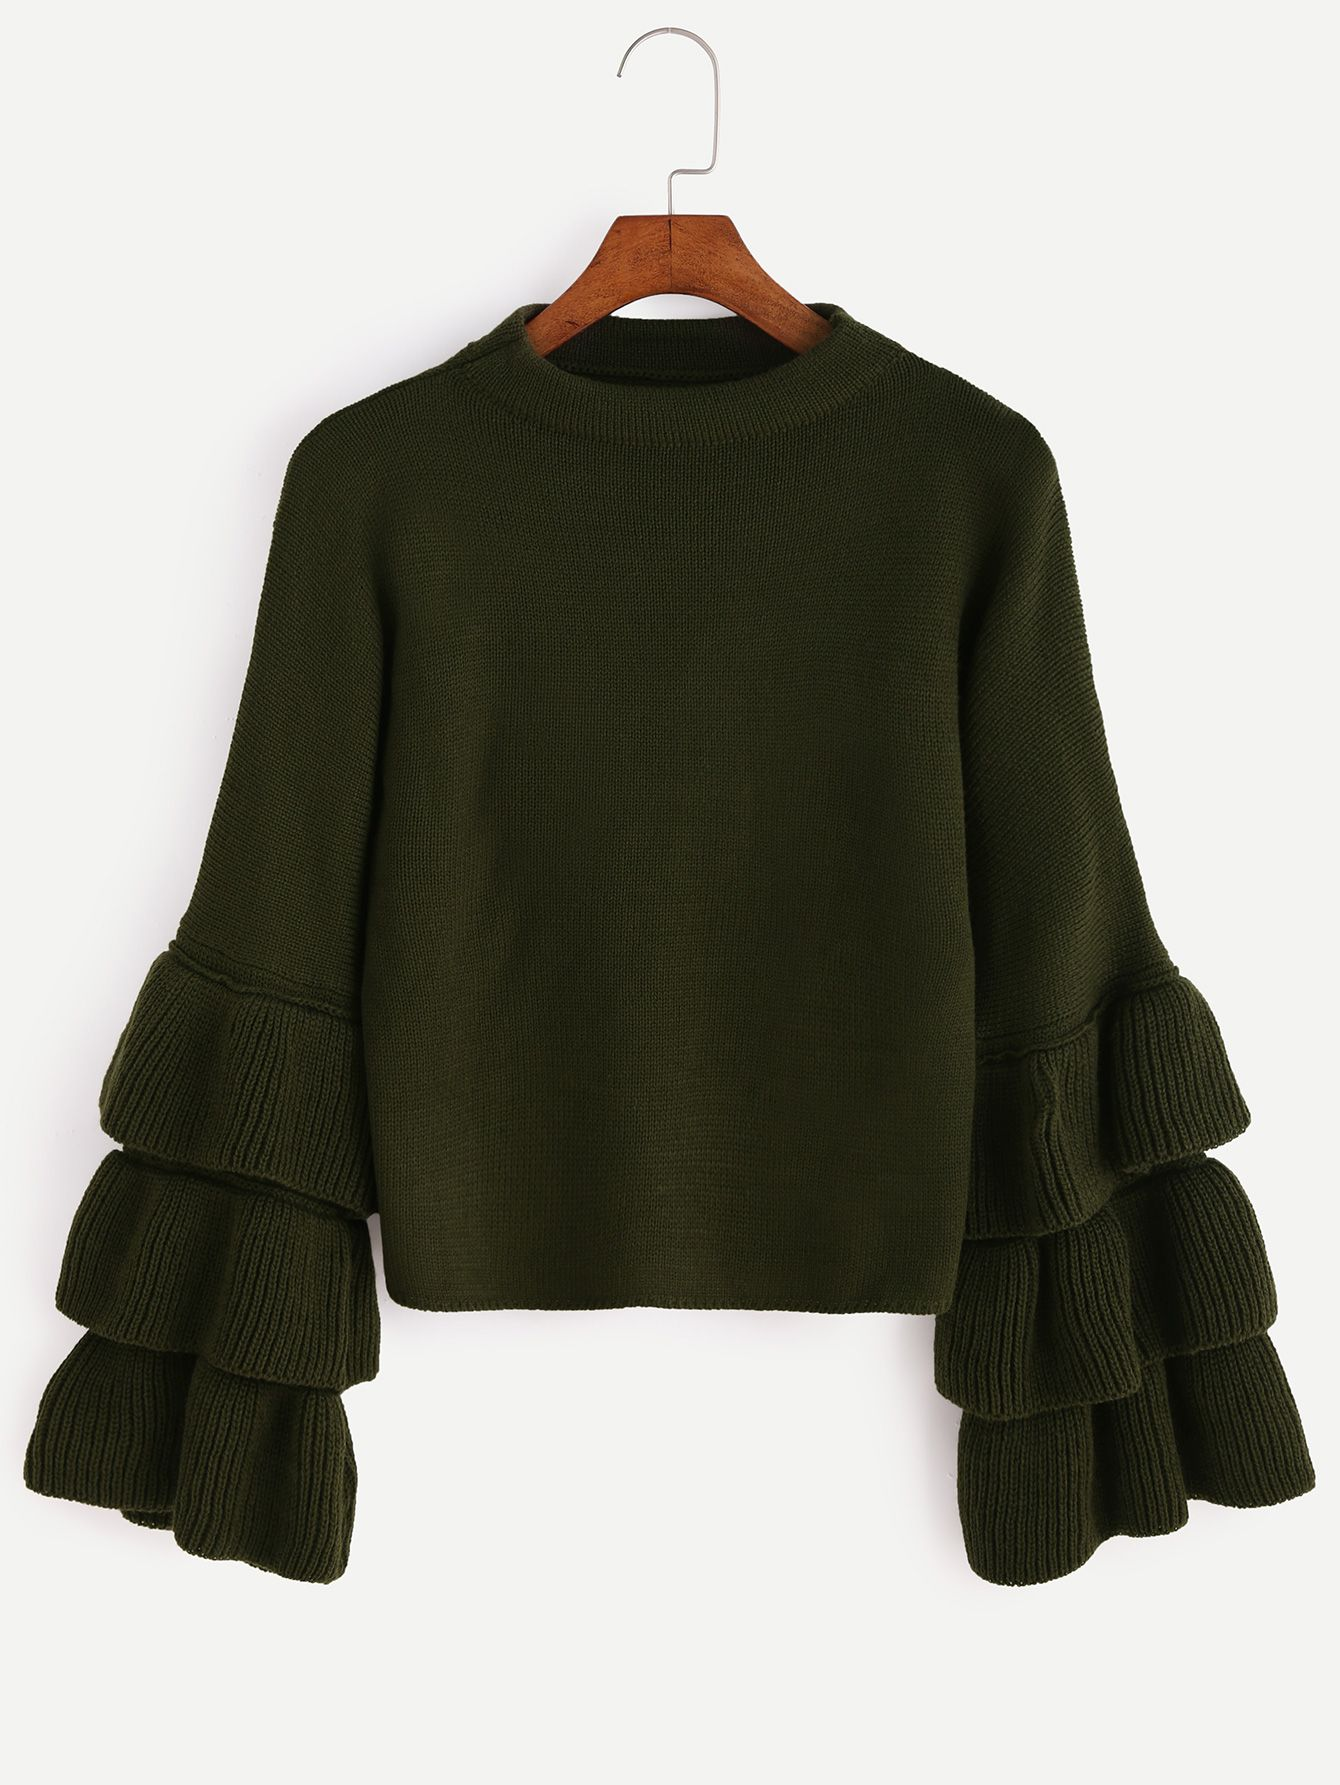 482ba198851a Shop Olive Green Layered Ruffle Sleeve Sweater online. SheIn offers Olive  Green Layered Ruffle Sleeve Sweater & more to fit your fashionable needs.